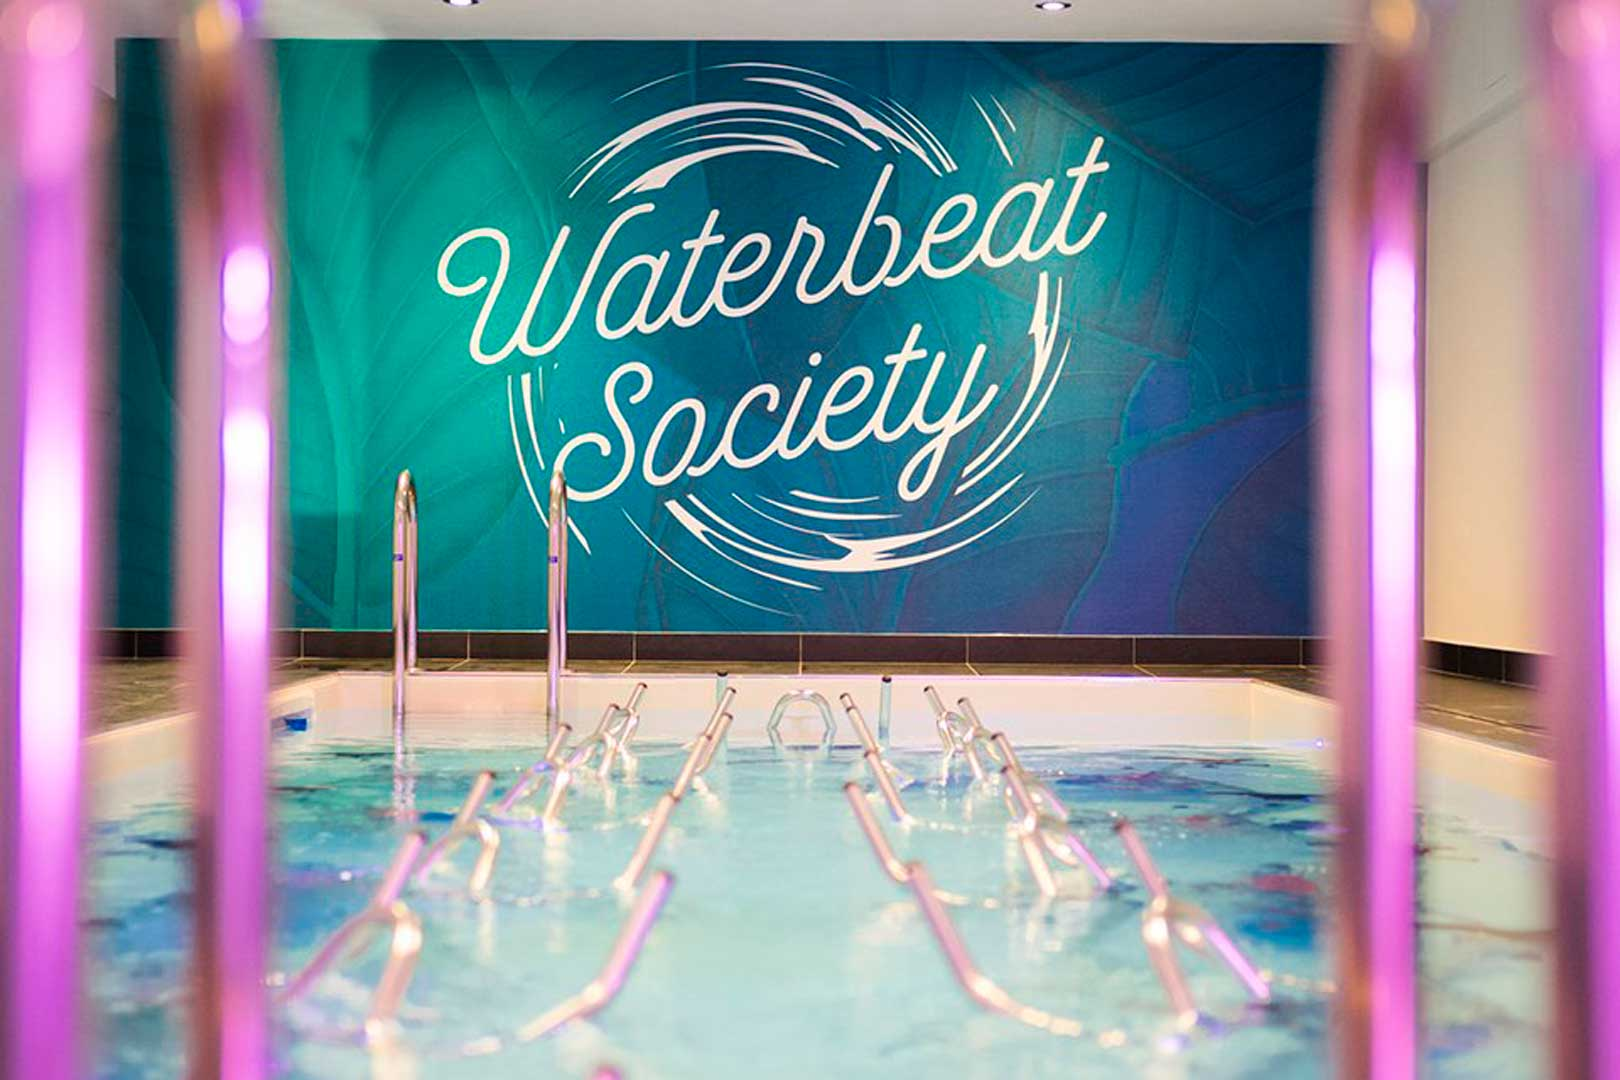 Waterbeat Society - Milano